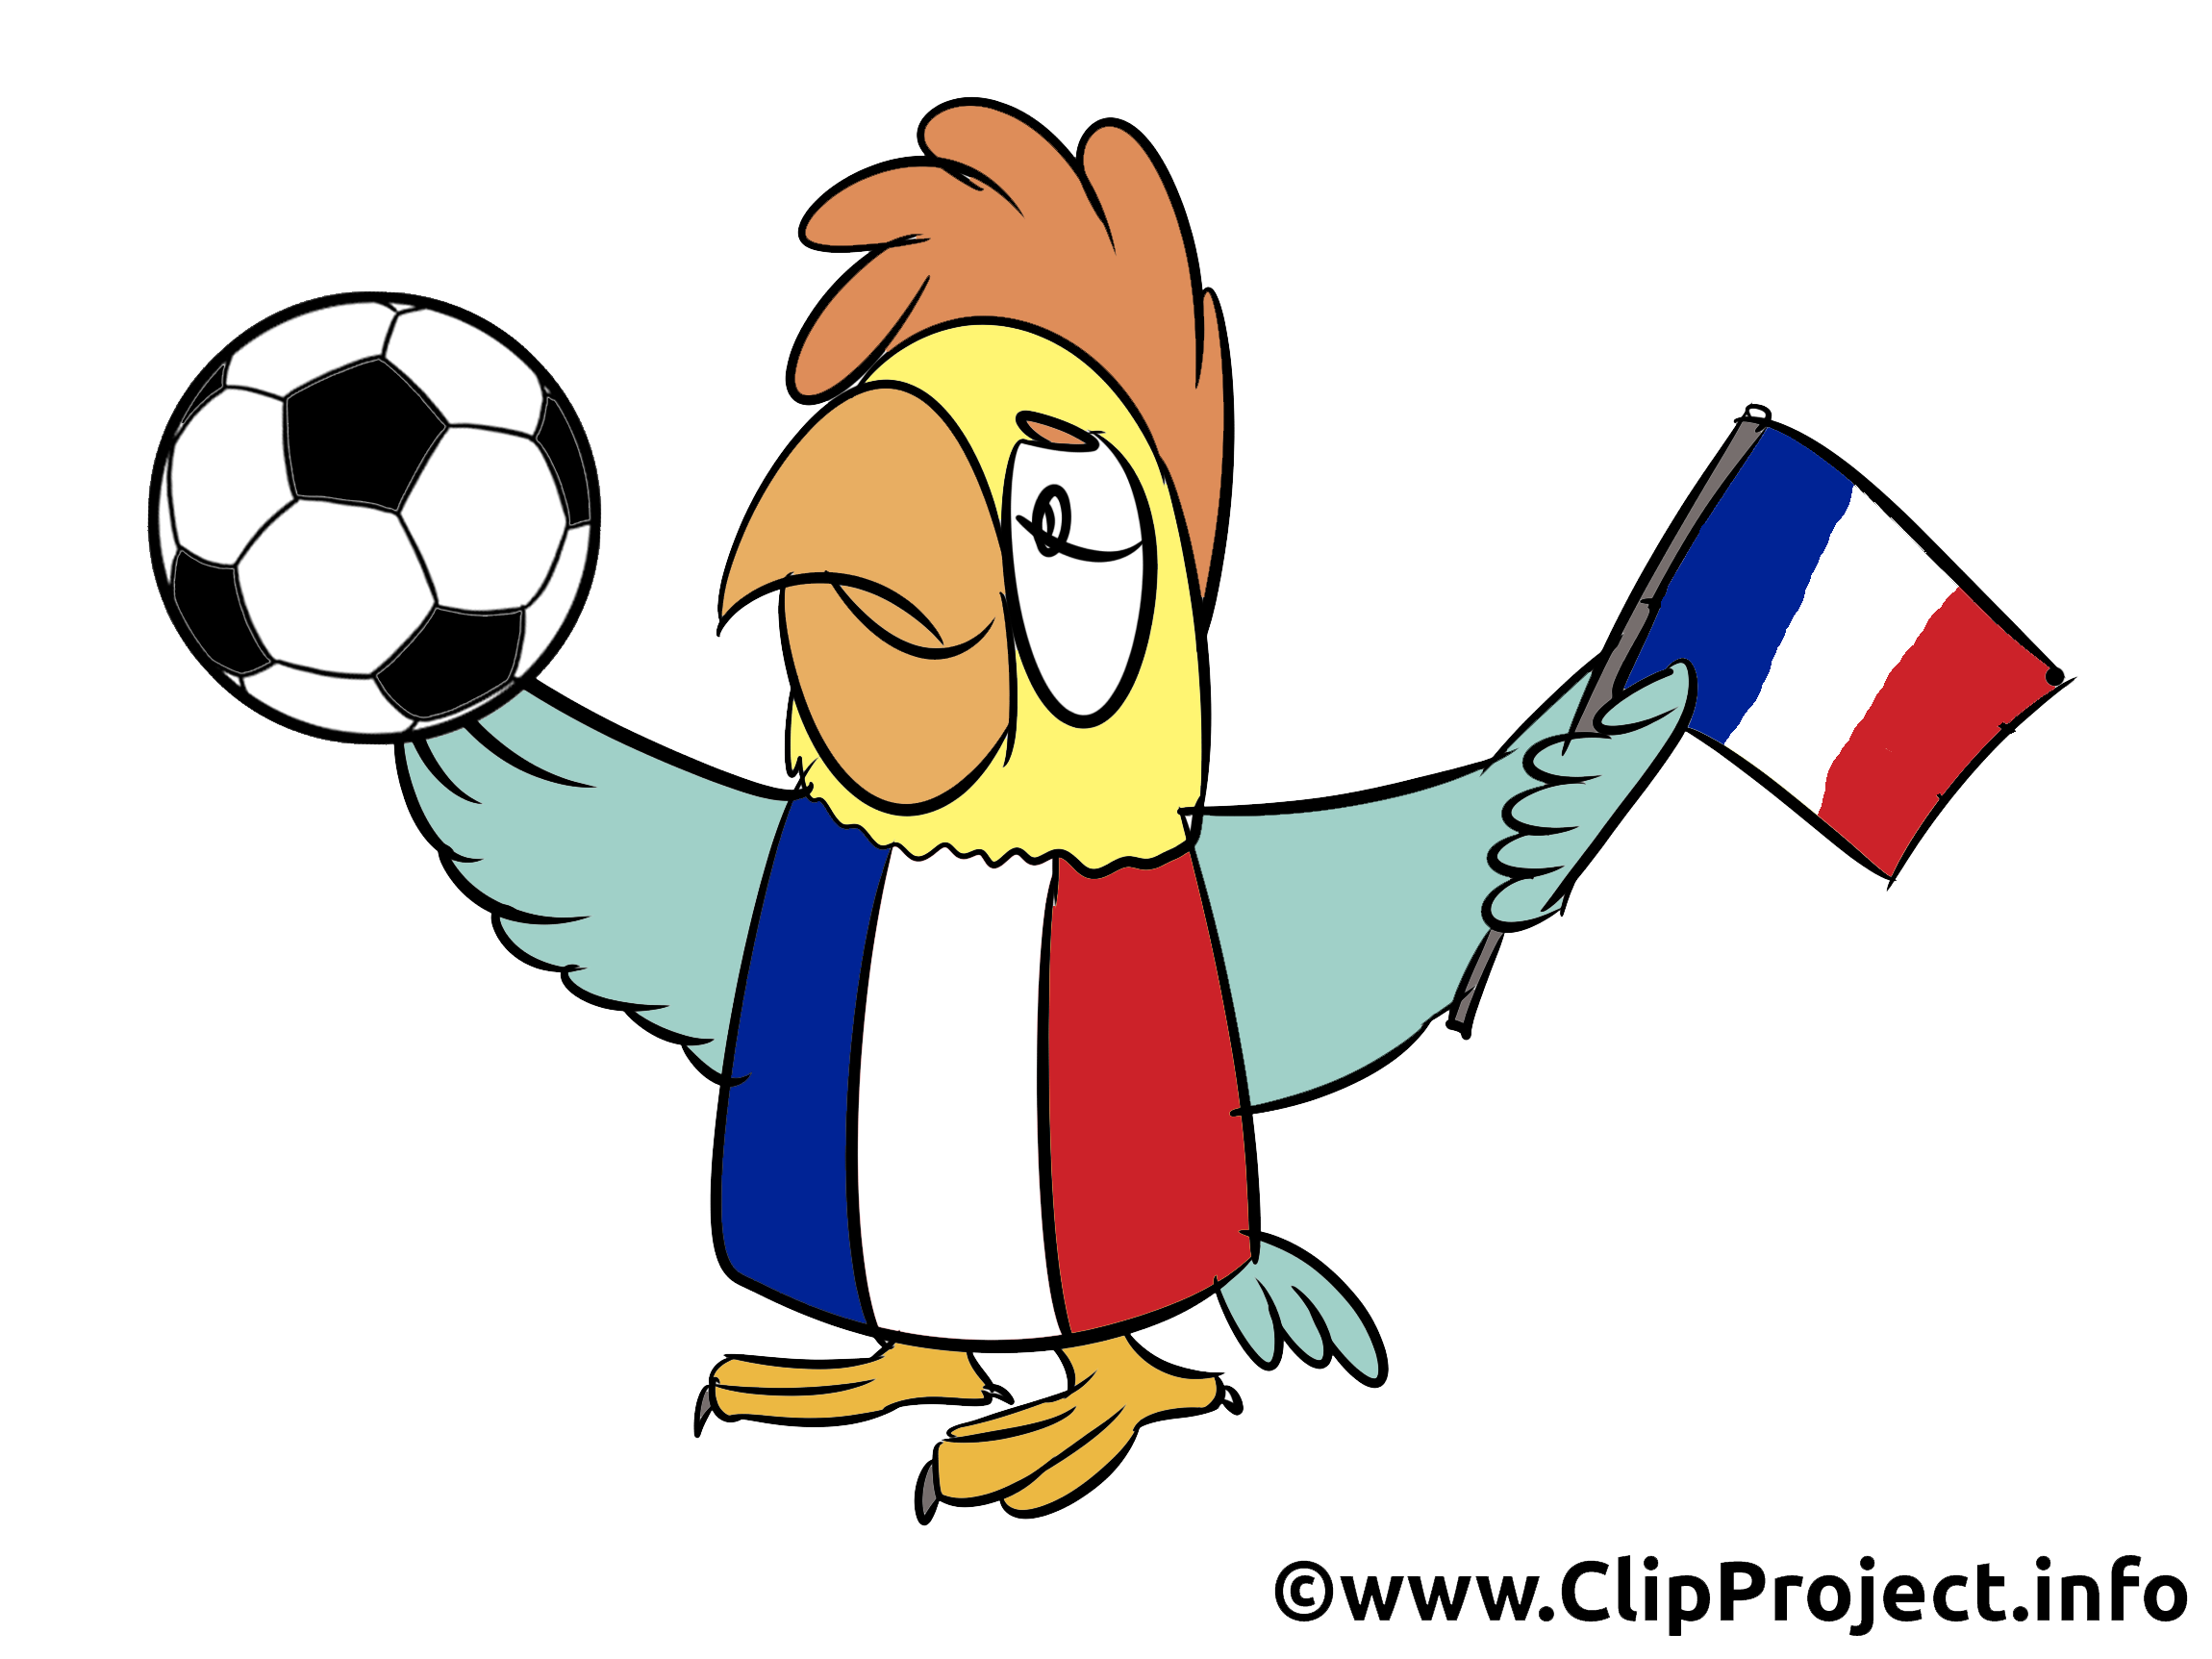 Football championnat France clipart image